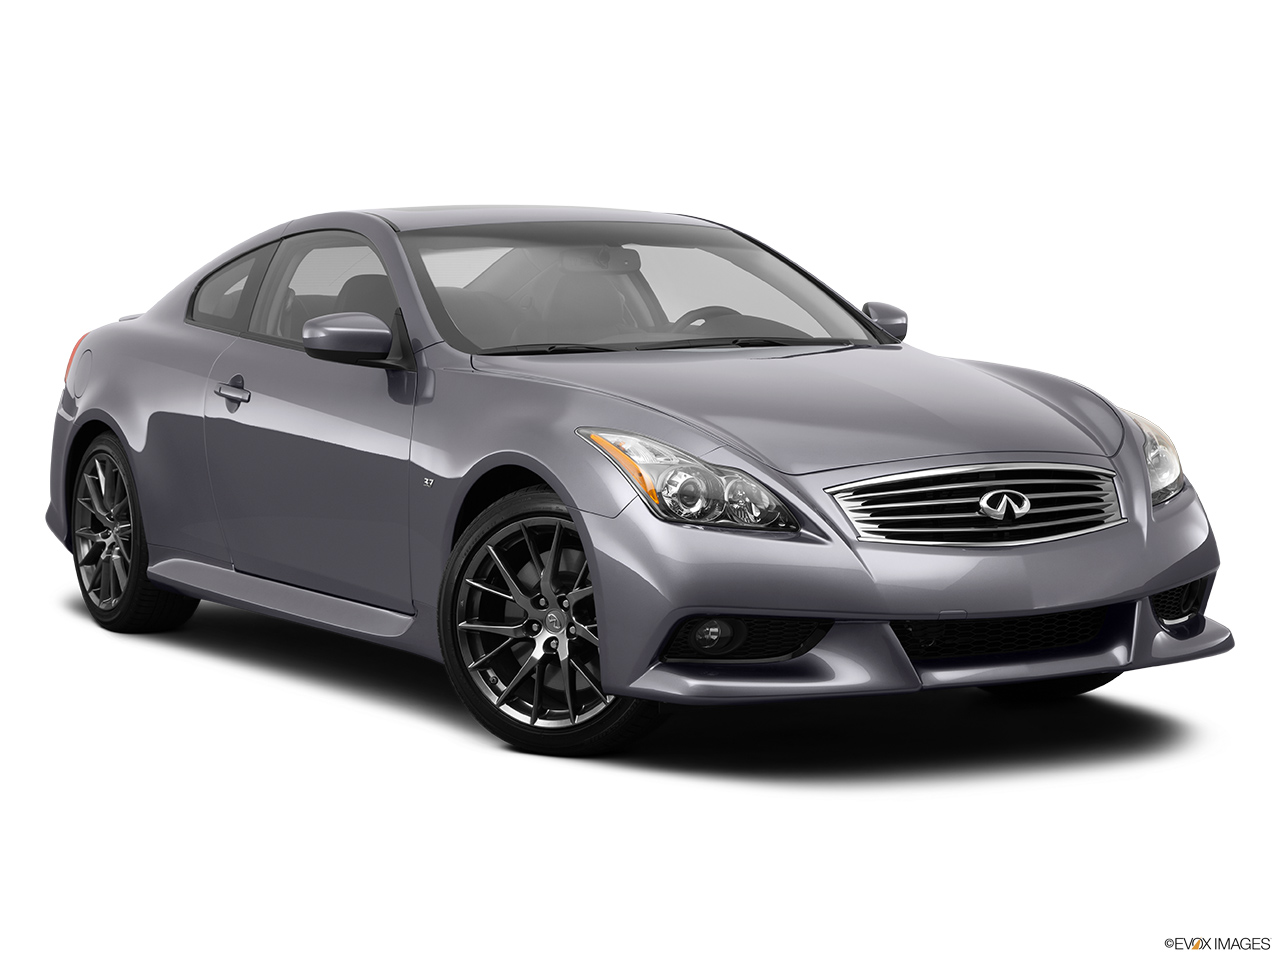 2014 Infiniti Q60 Coupe 2 Door Manual Ipl Rwd Front Angle View